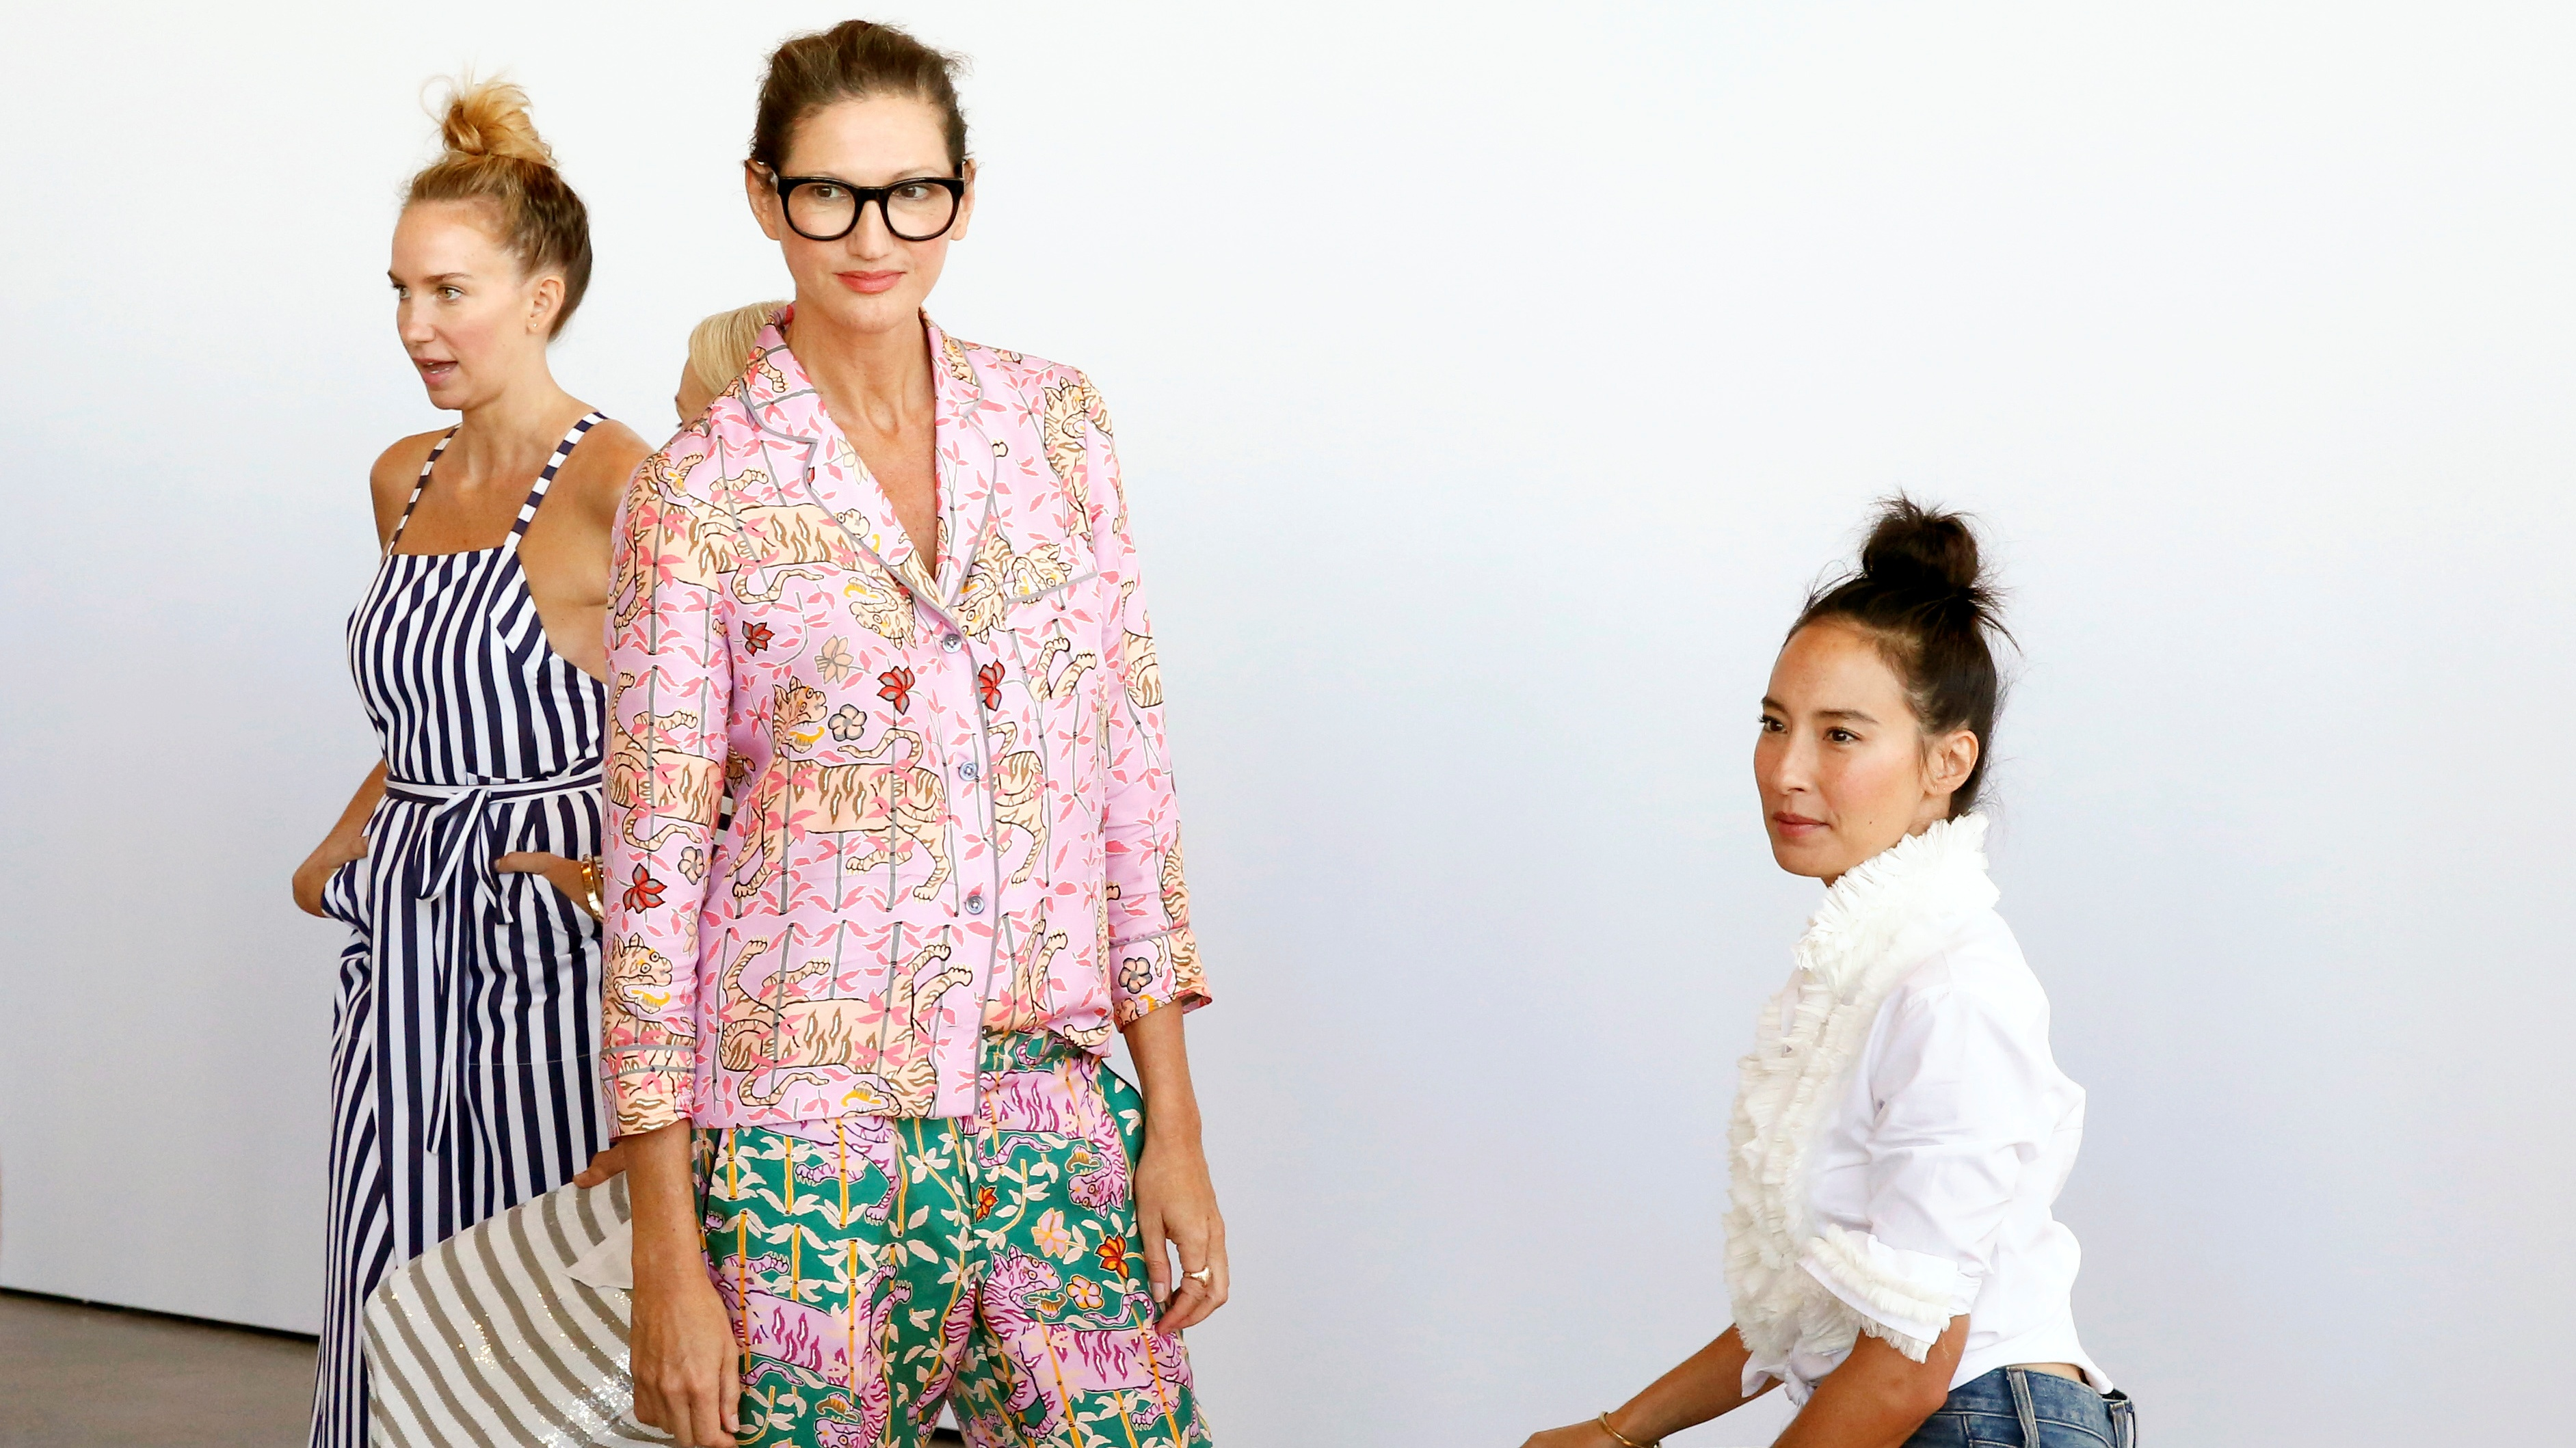 J. Crew creative director Jenna Lyons (C) stops for a photograph during a presentation of the J. Crew Spring/Summer 2017 collection during New York Fashion Week in the Manhattan borough of New York, U.S., September 11, 2016. REUTERS/Lucas Jackson